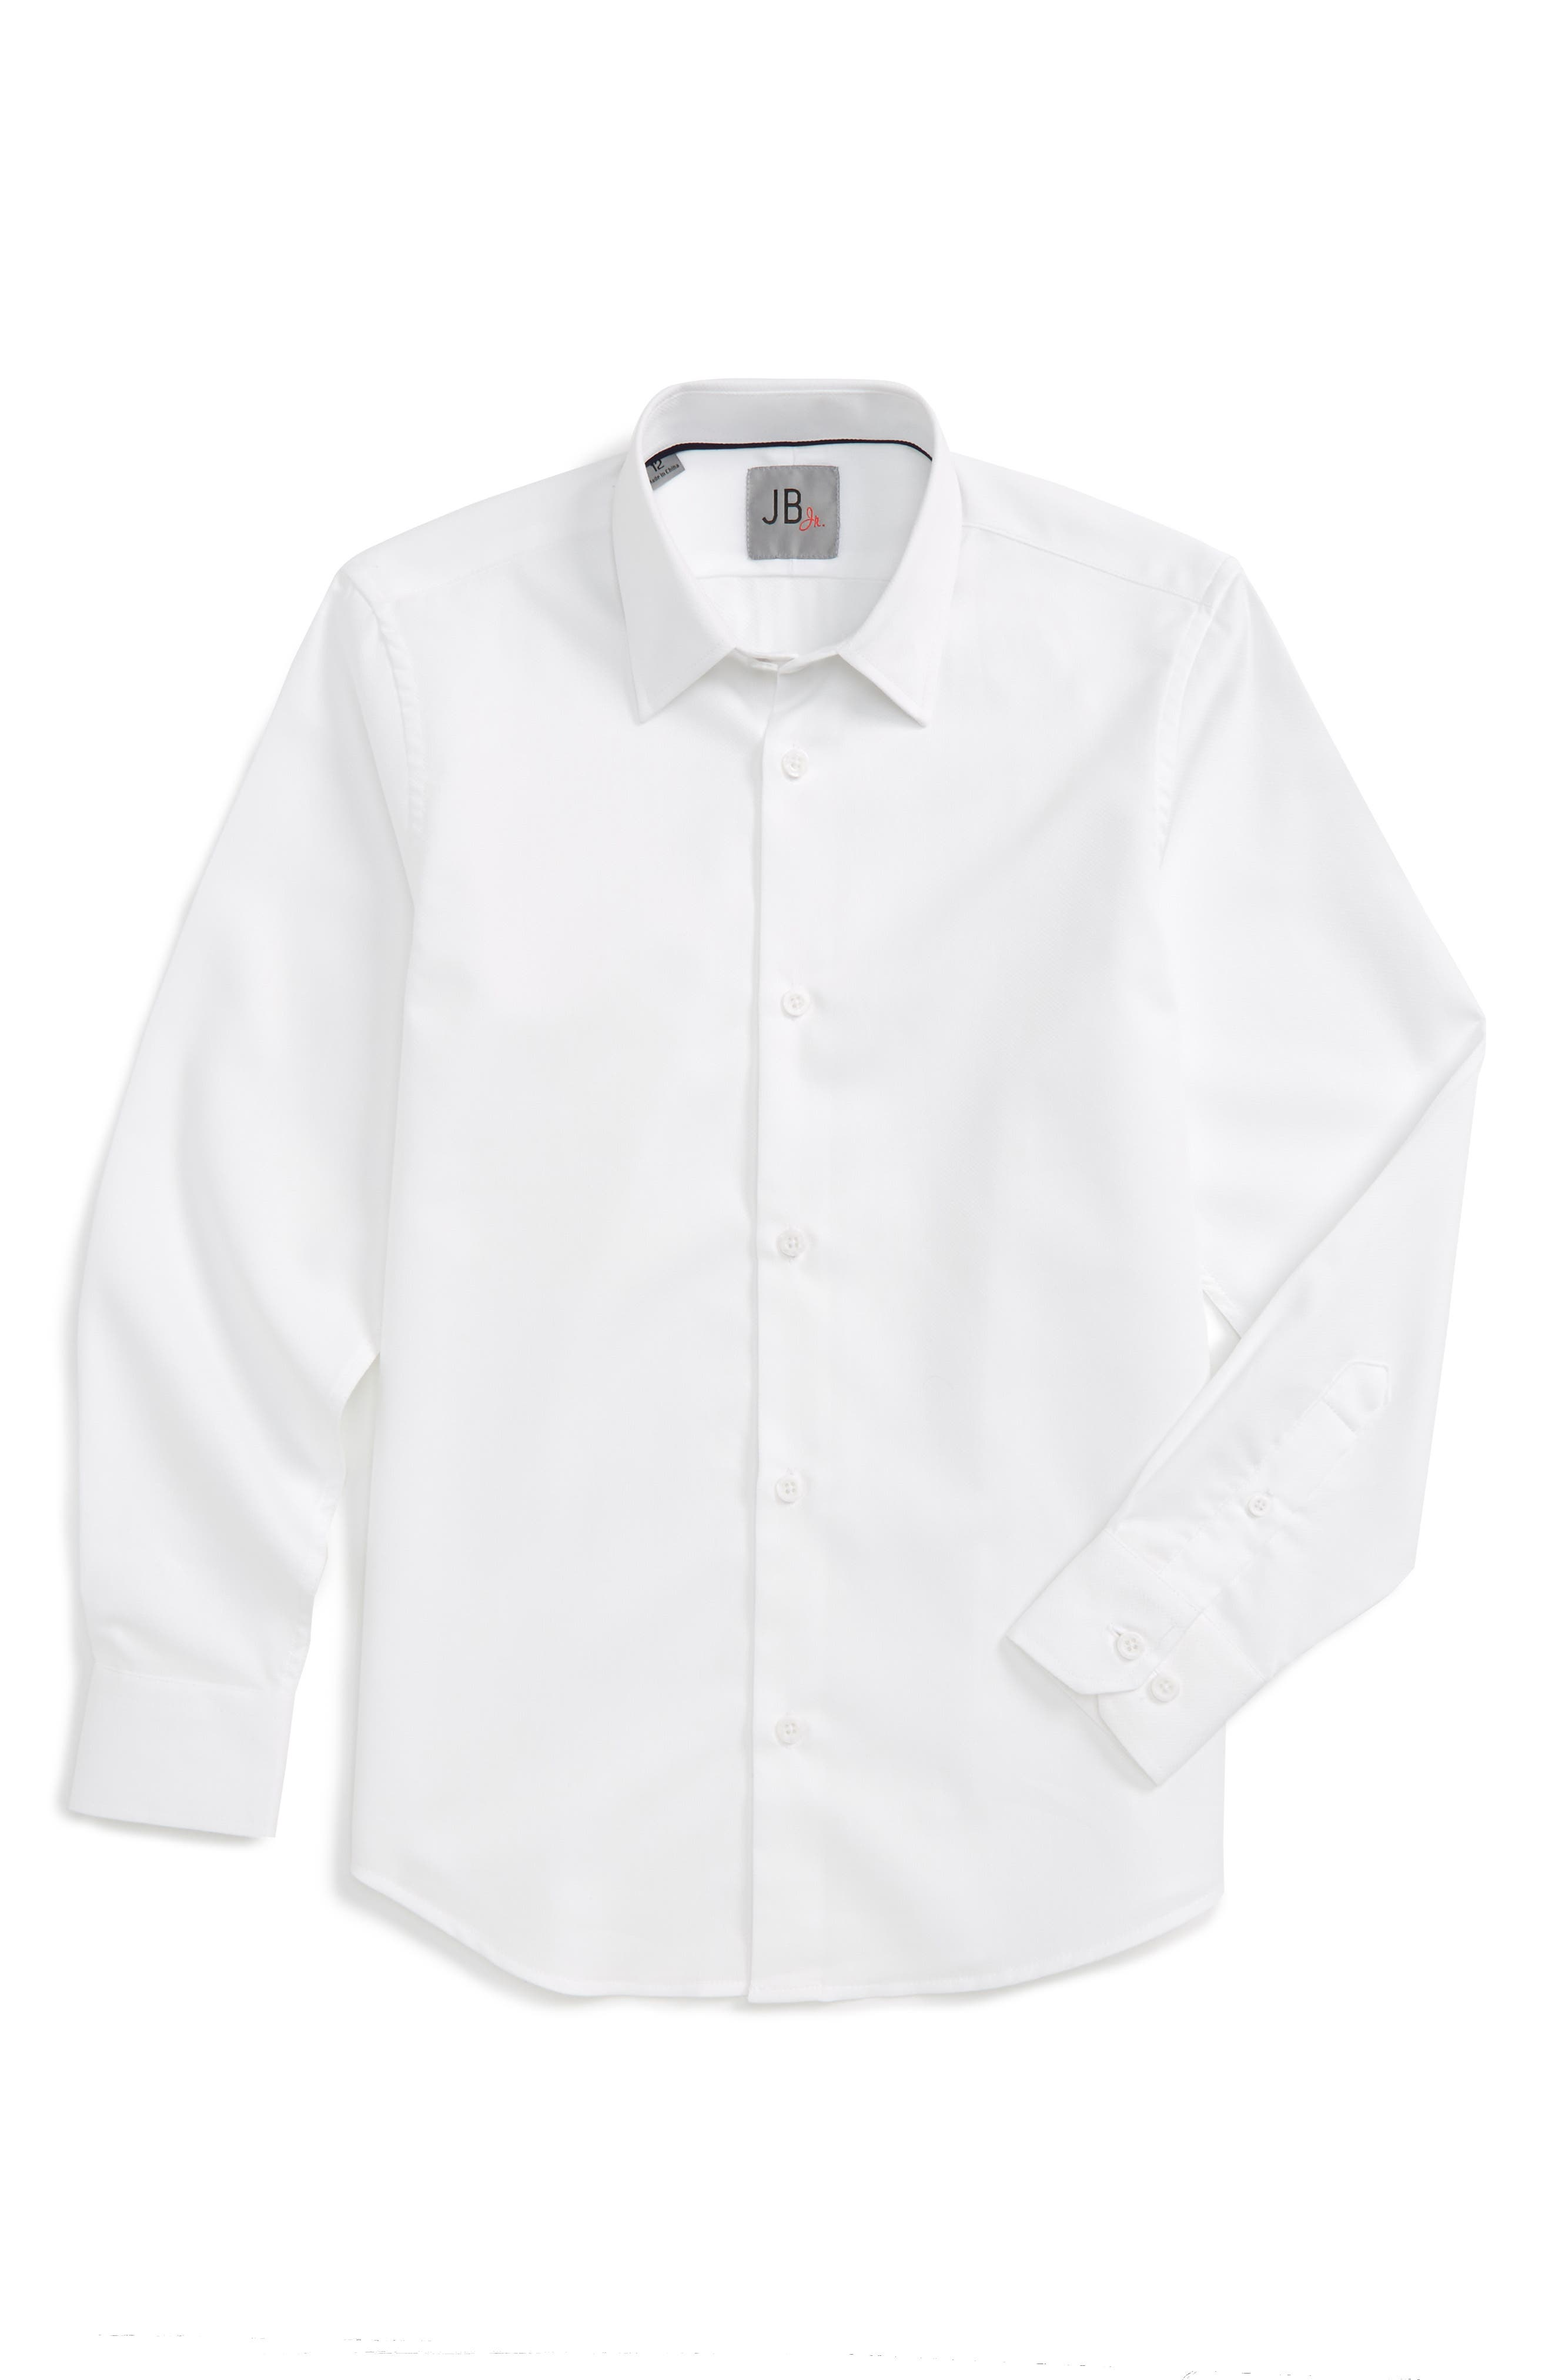 JB Jr Textured Dress Shirt (Big Boys)